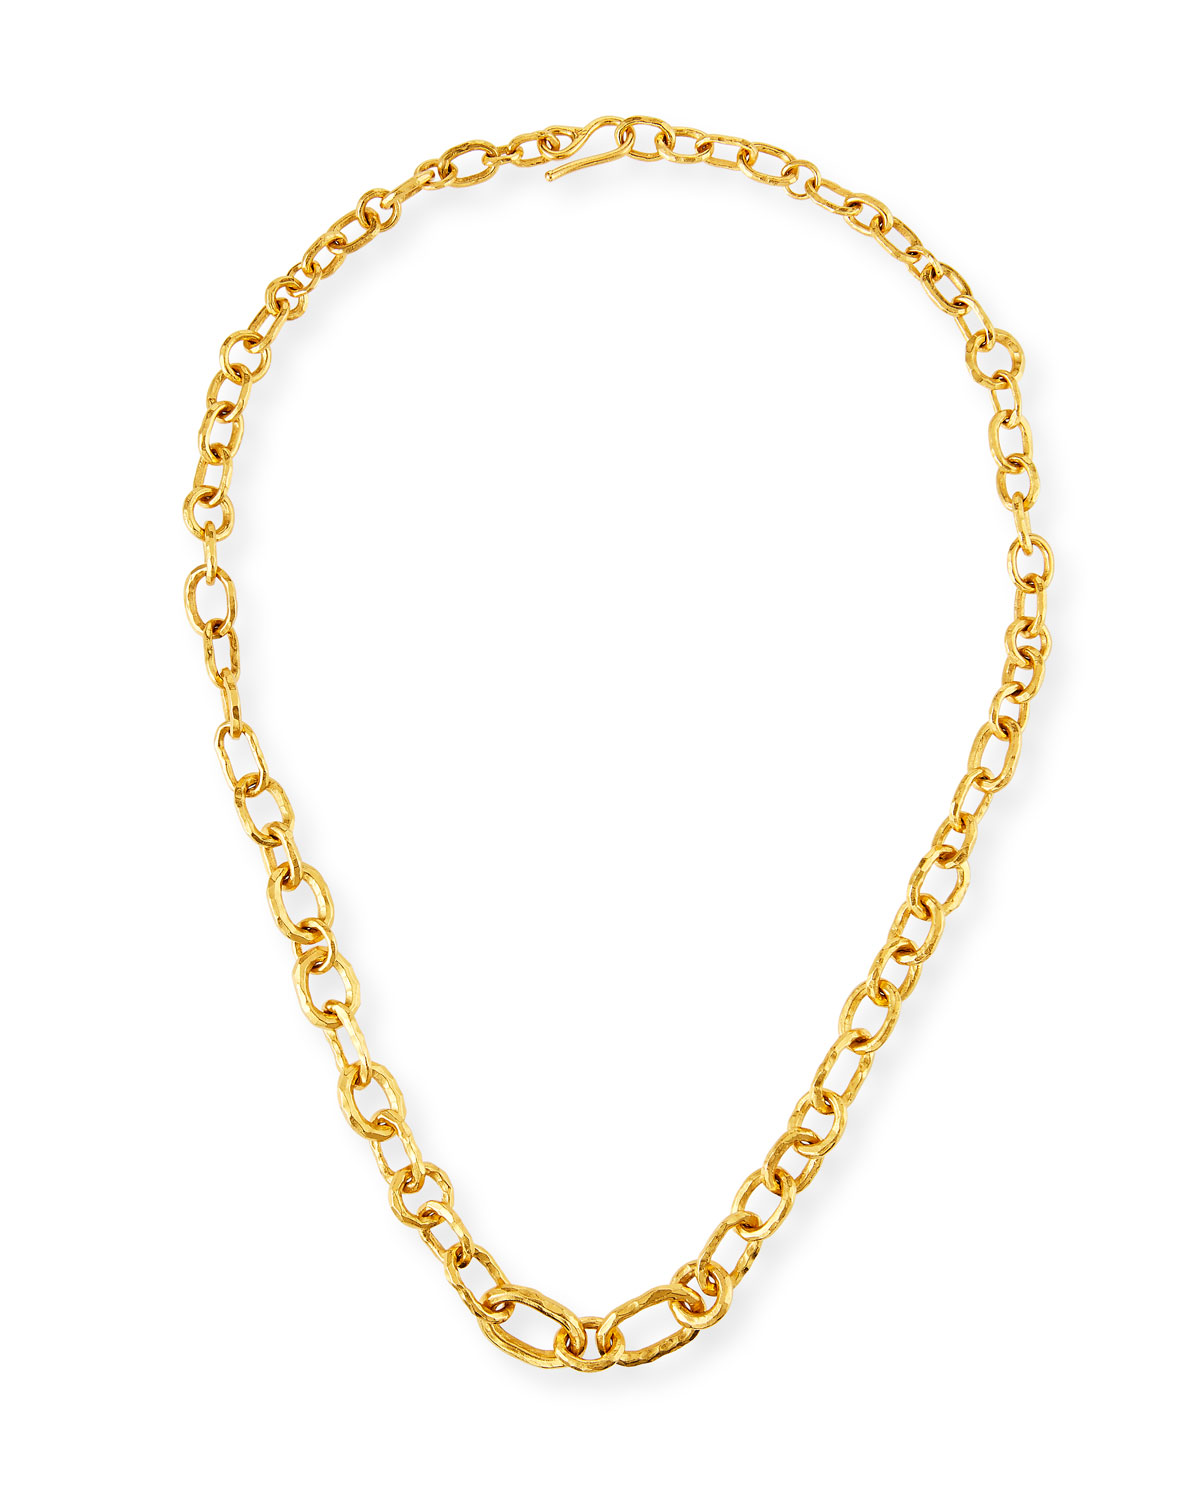 22k Chain-Link Necklace